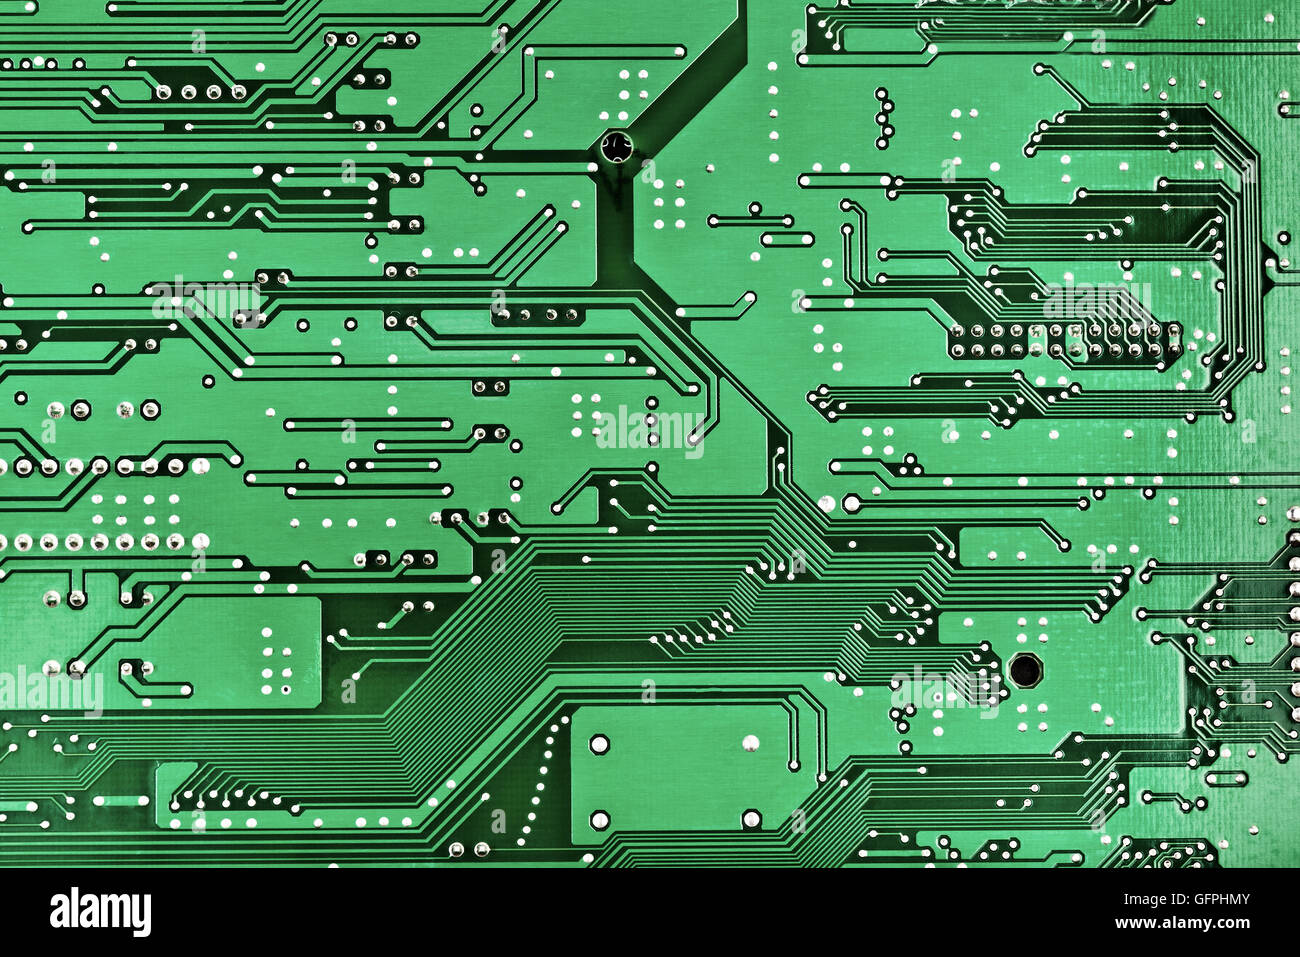 Printed Circuit Board For Design   Stock Image